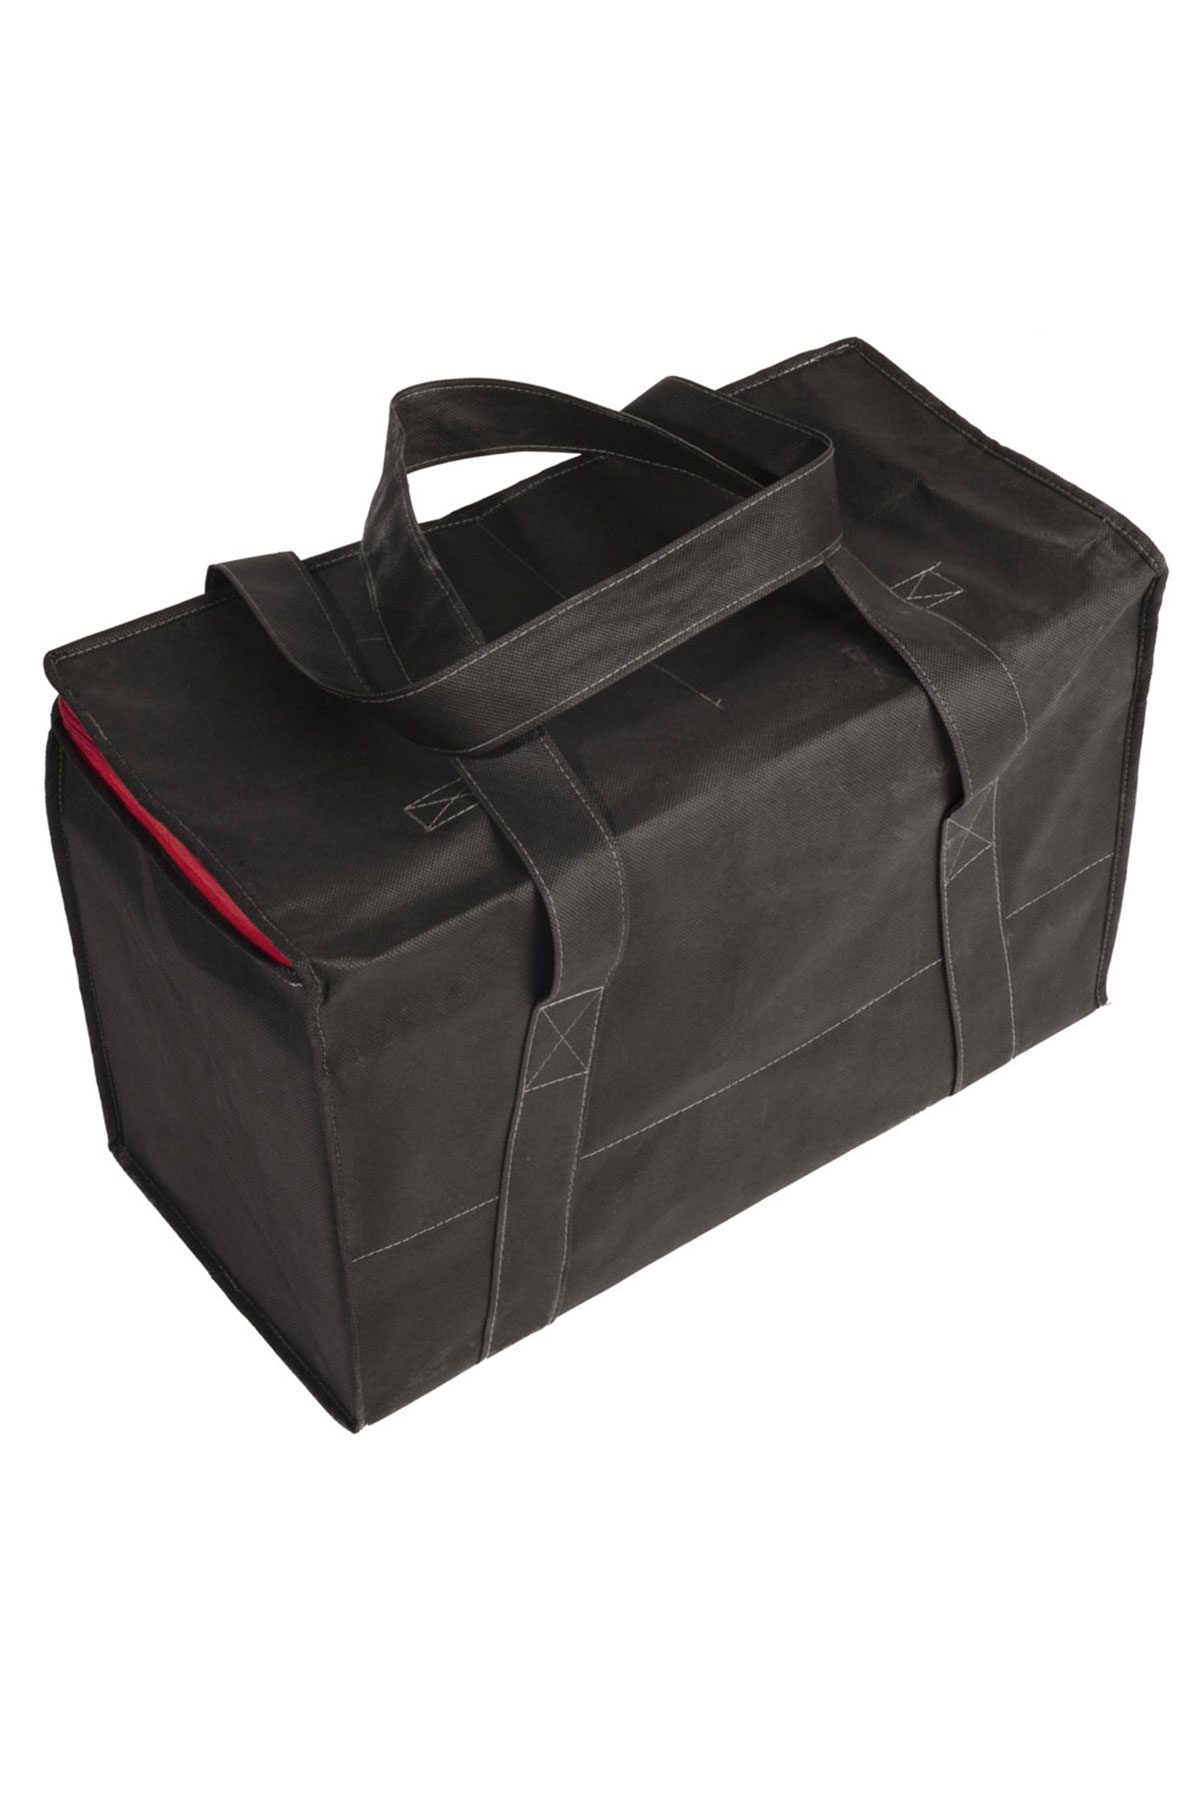 Mr. Serious 18 PACK Spray Can Bag